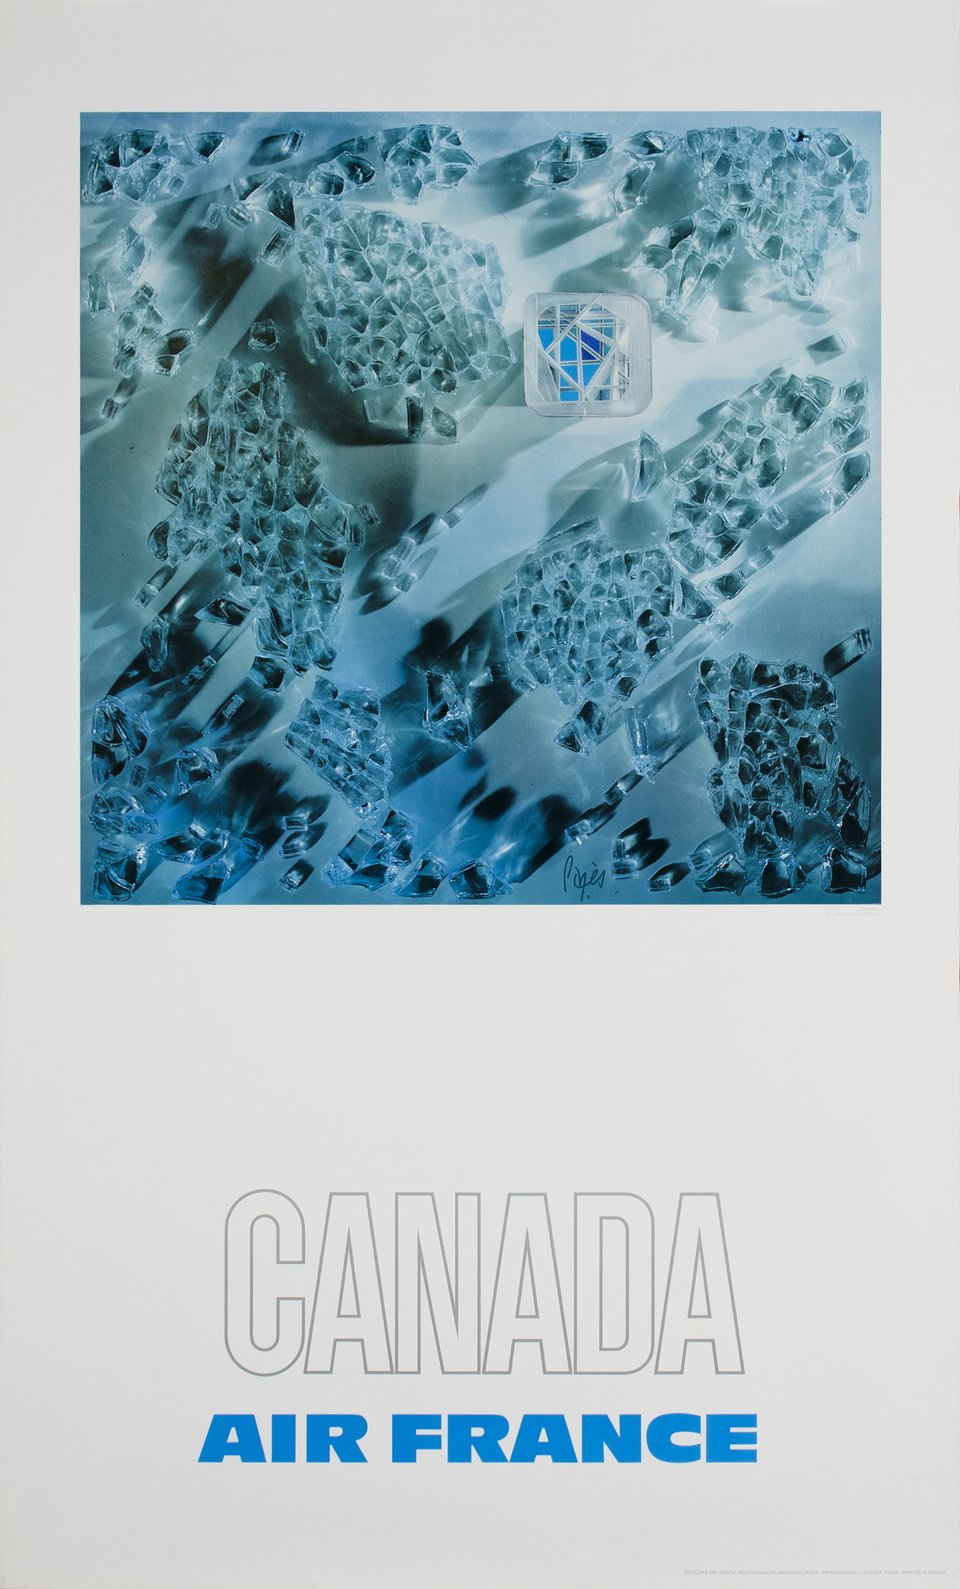 Air France, Canada – Vintage poster – Raymond PAGES – 1971